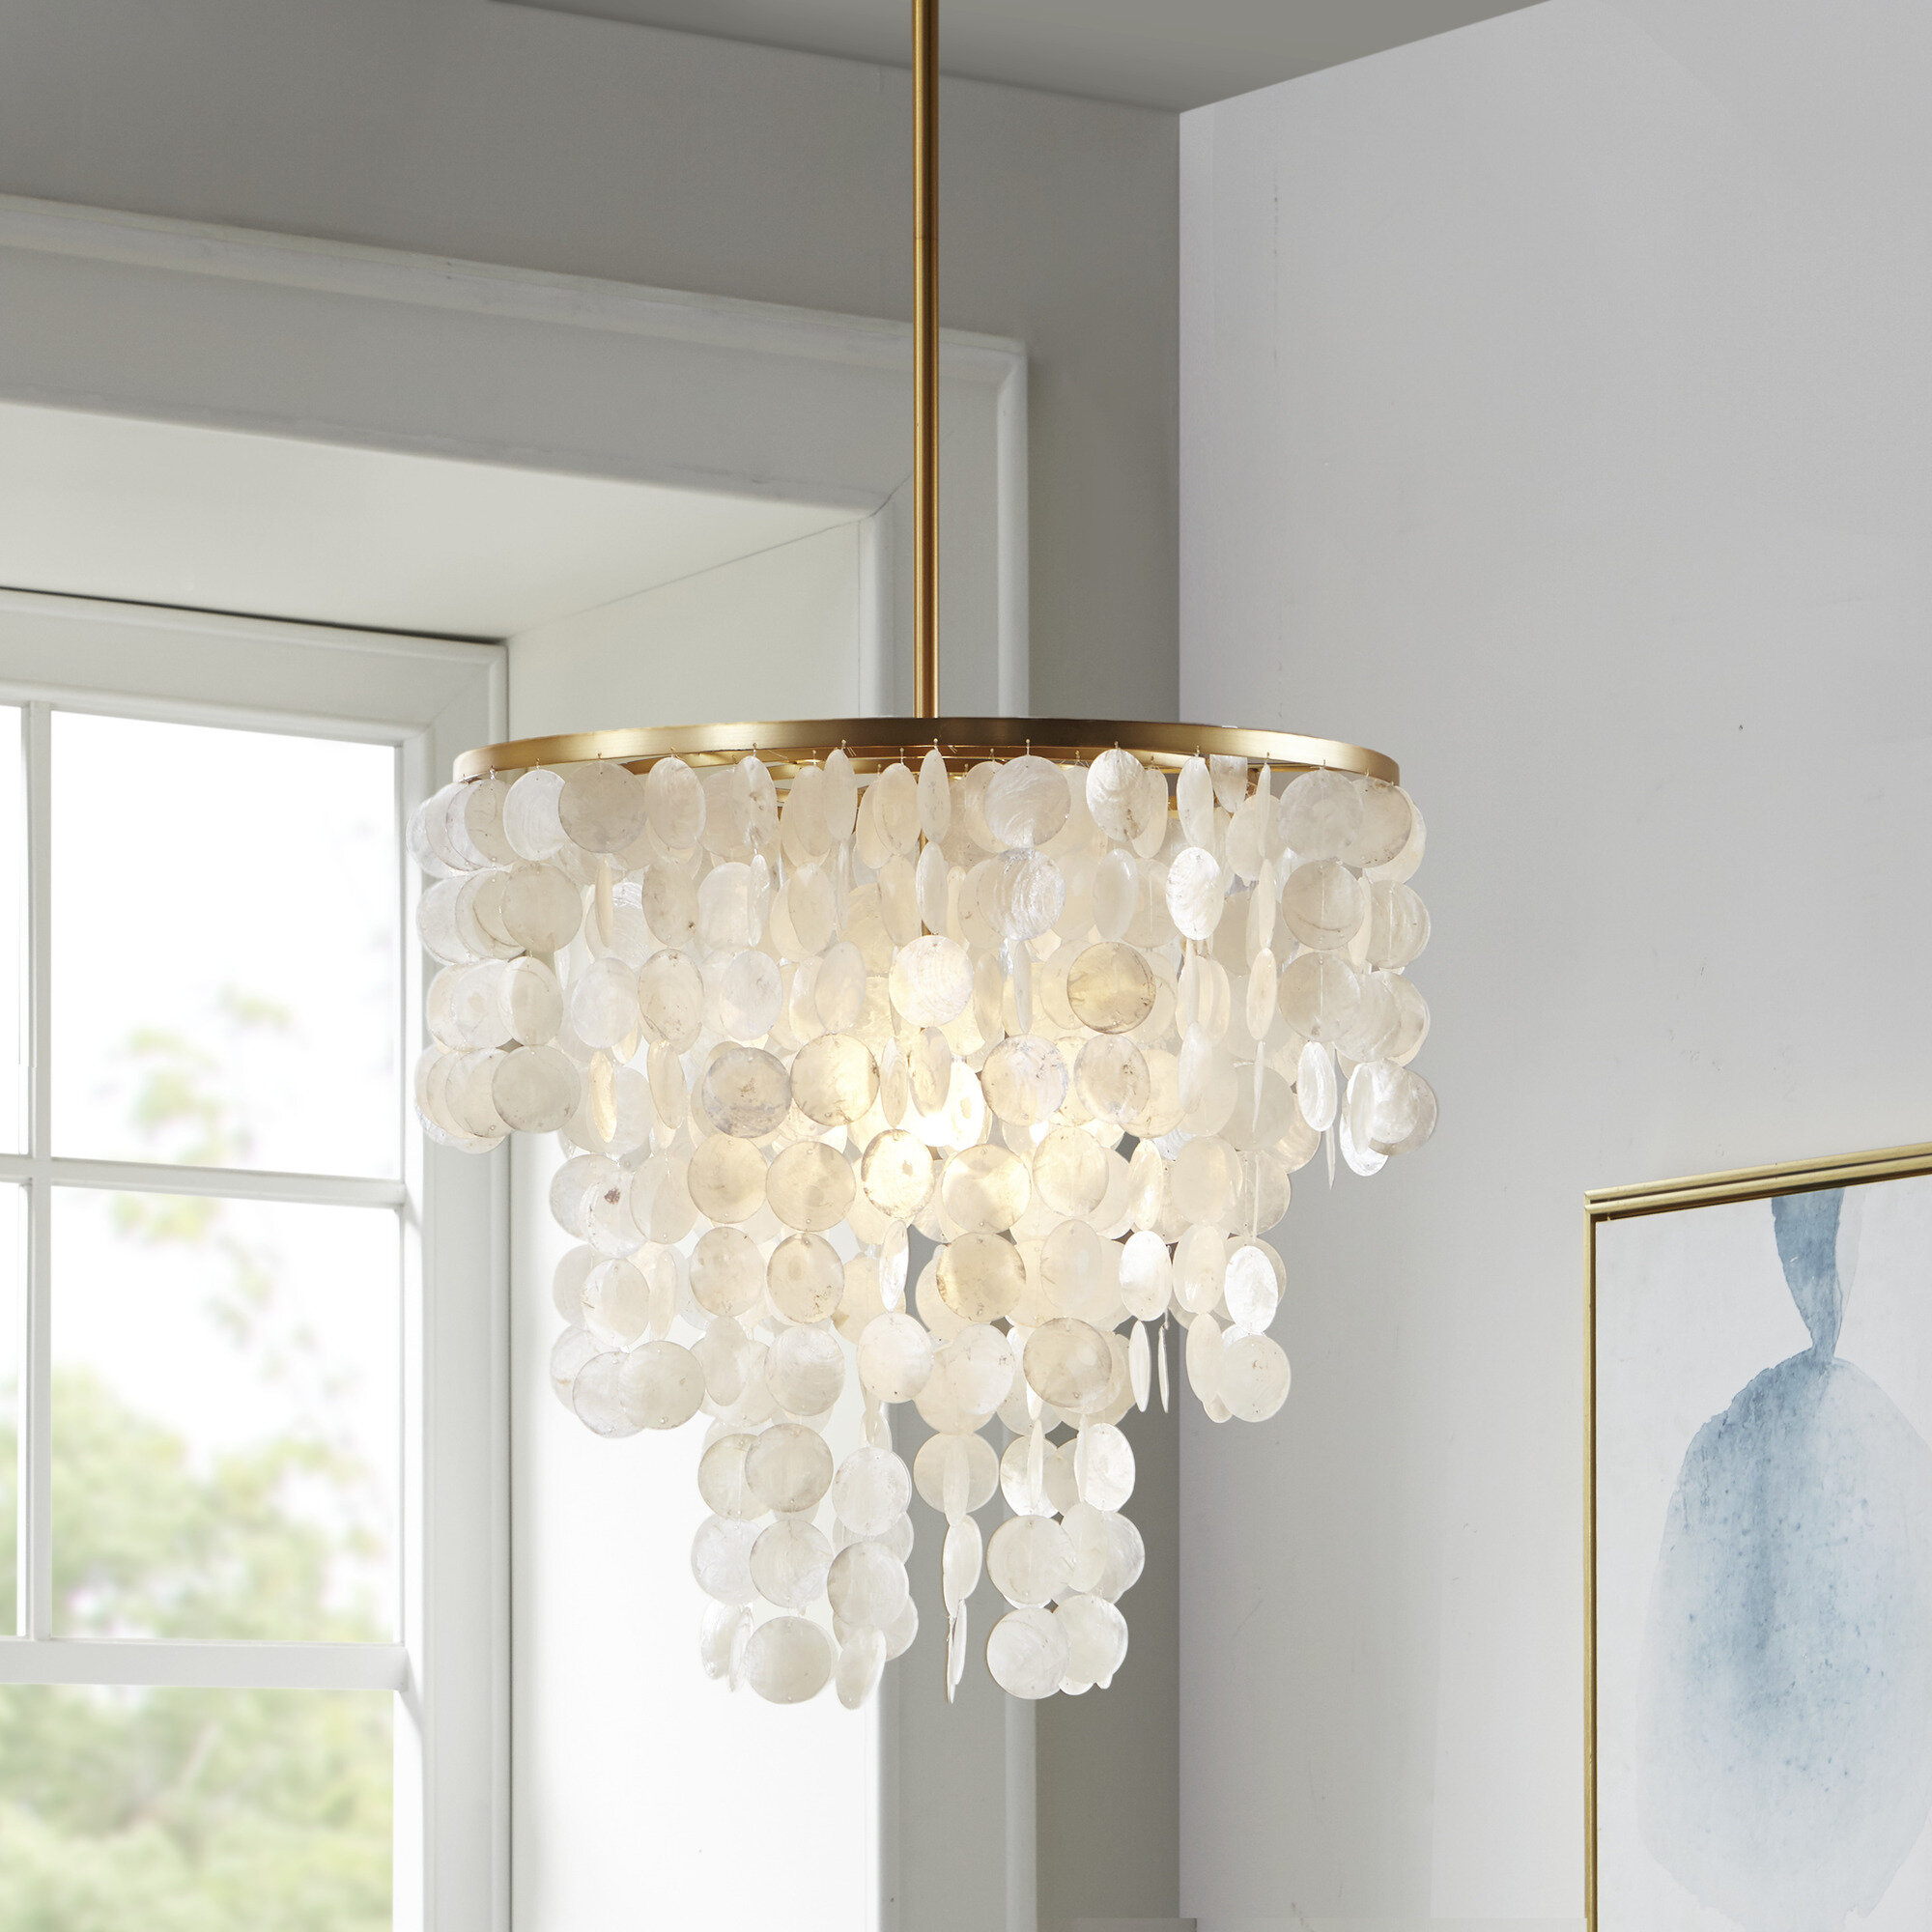 Shell Ceiling Lights You Ll Love In 2021 Wayfair